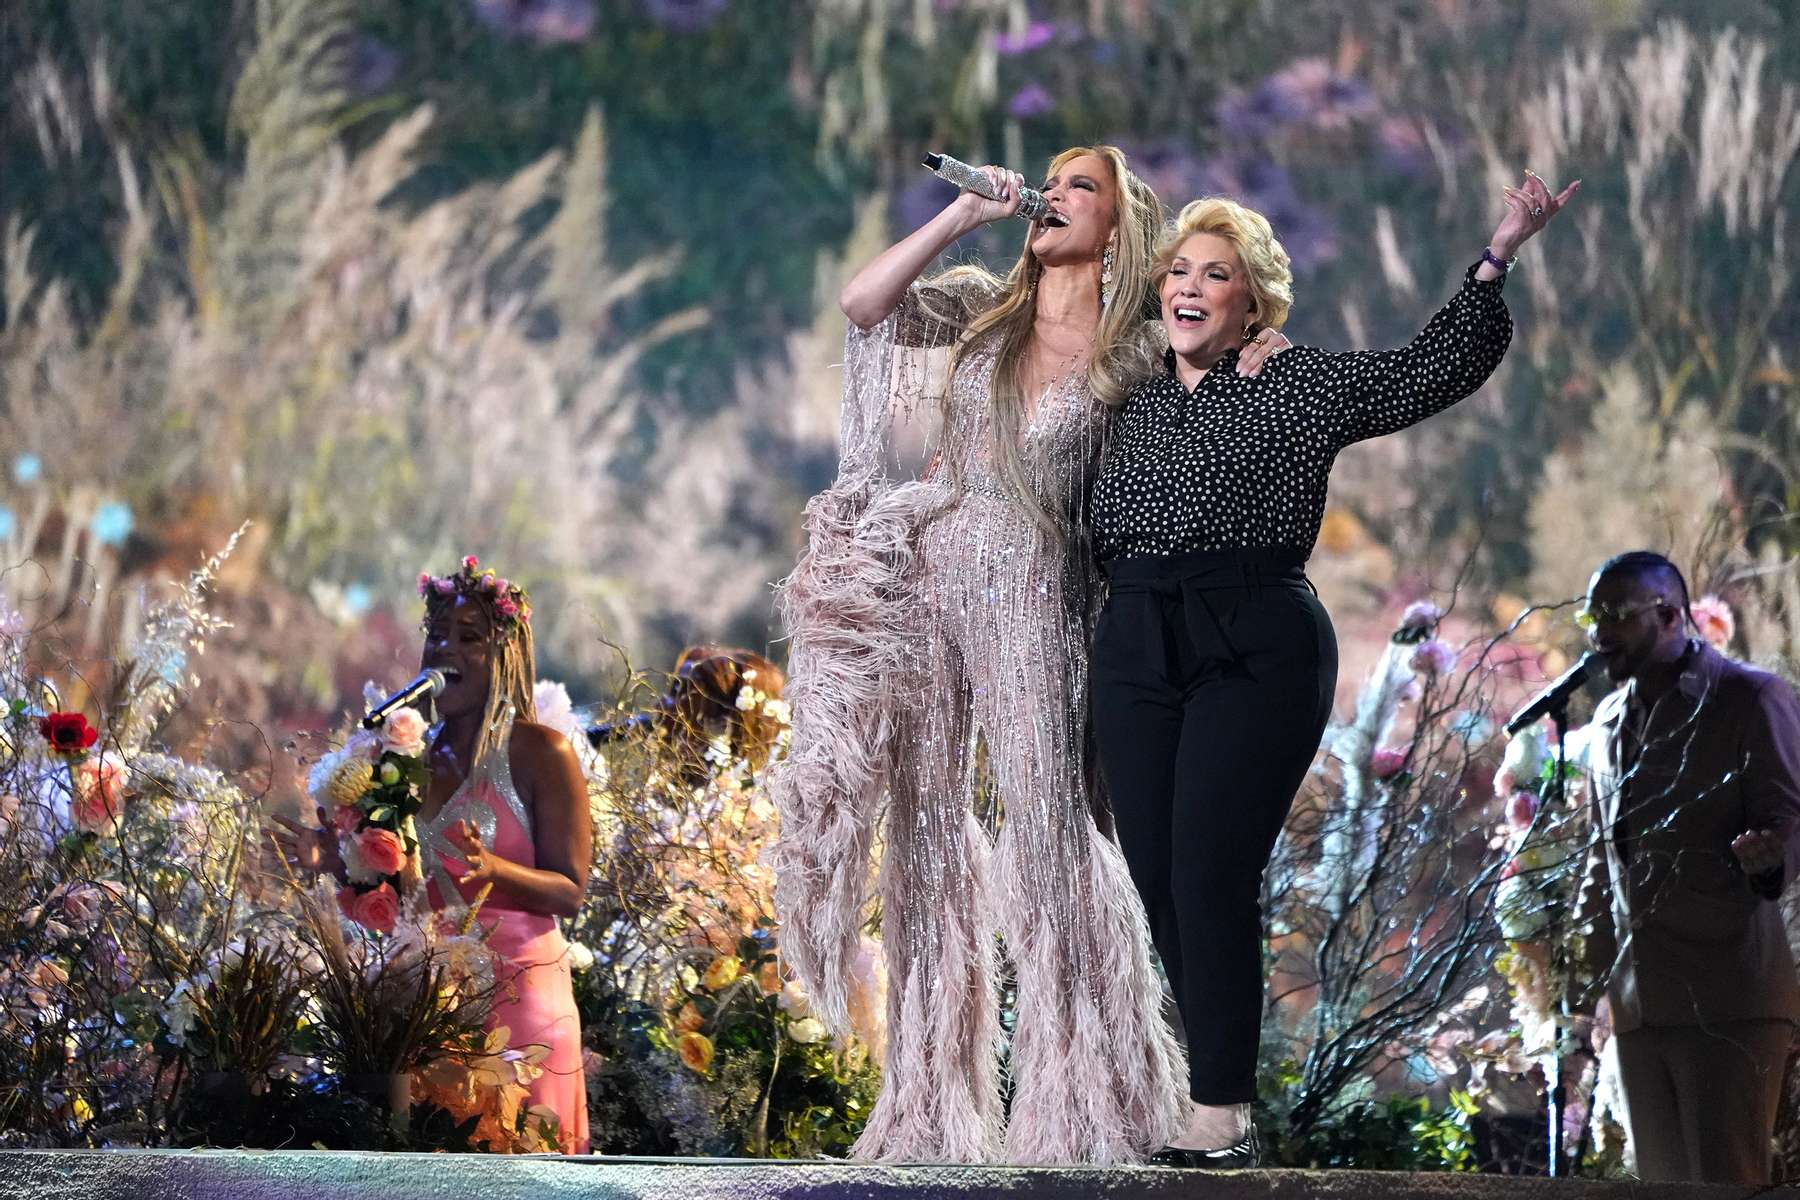 Jennifer Lopez performs with her mother Guadalupe Rodríguez at {quote}Vax Live: The Concert to Reunite the World{quote} on Sunday, May 2, 2021, at SoFi Stadium in Inglewood, Calif. (Photo by Jordan Strauss/Invision/AP)